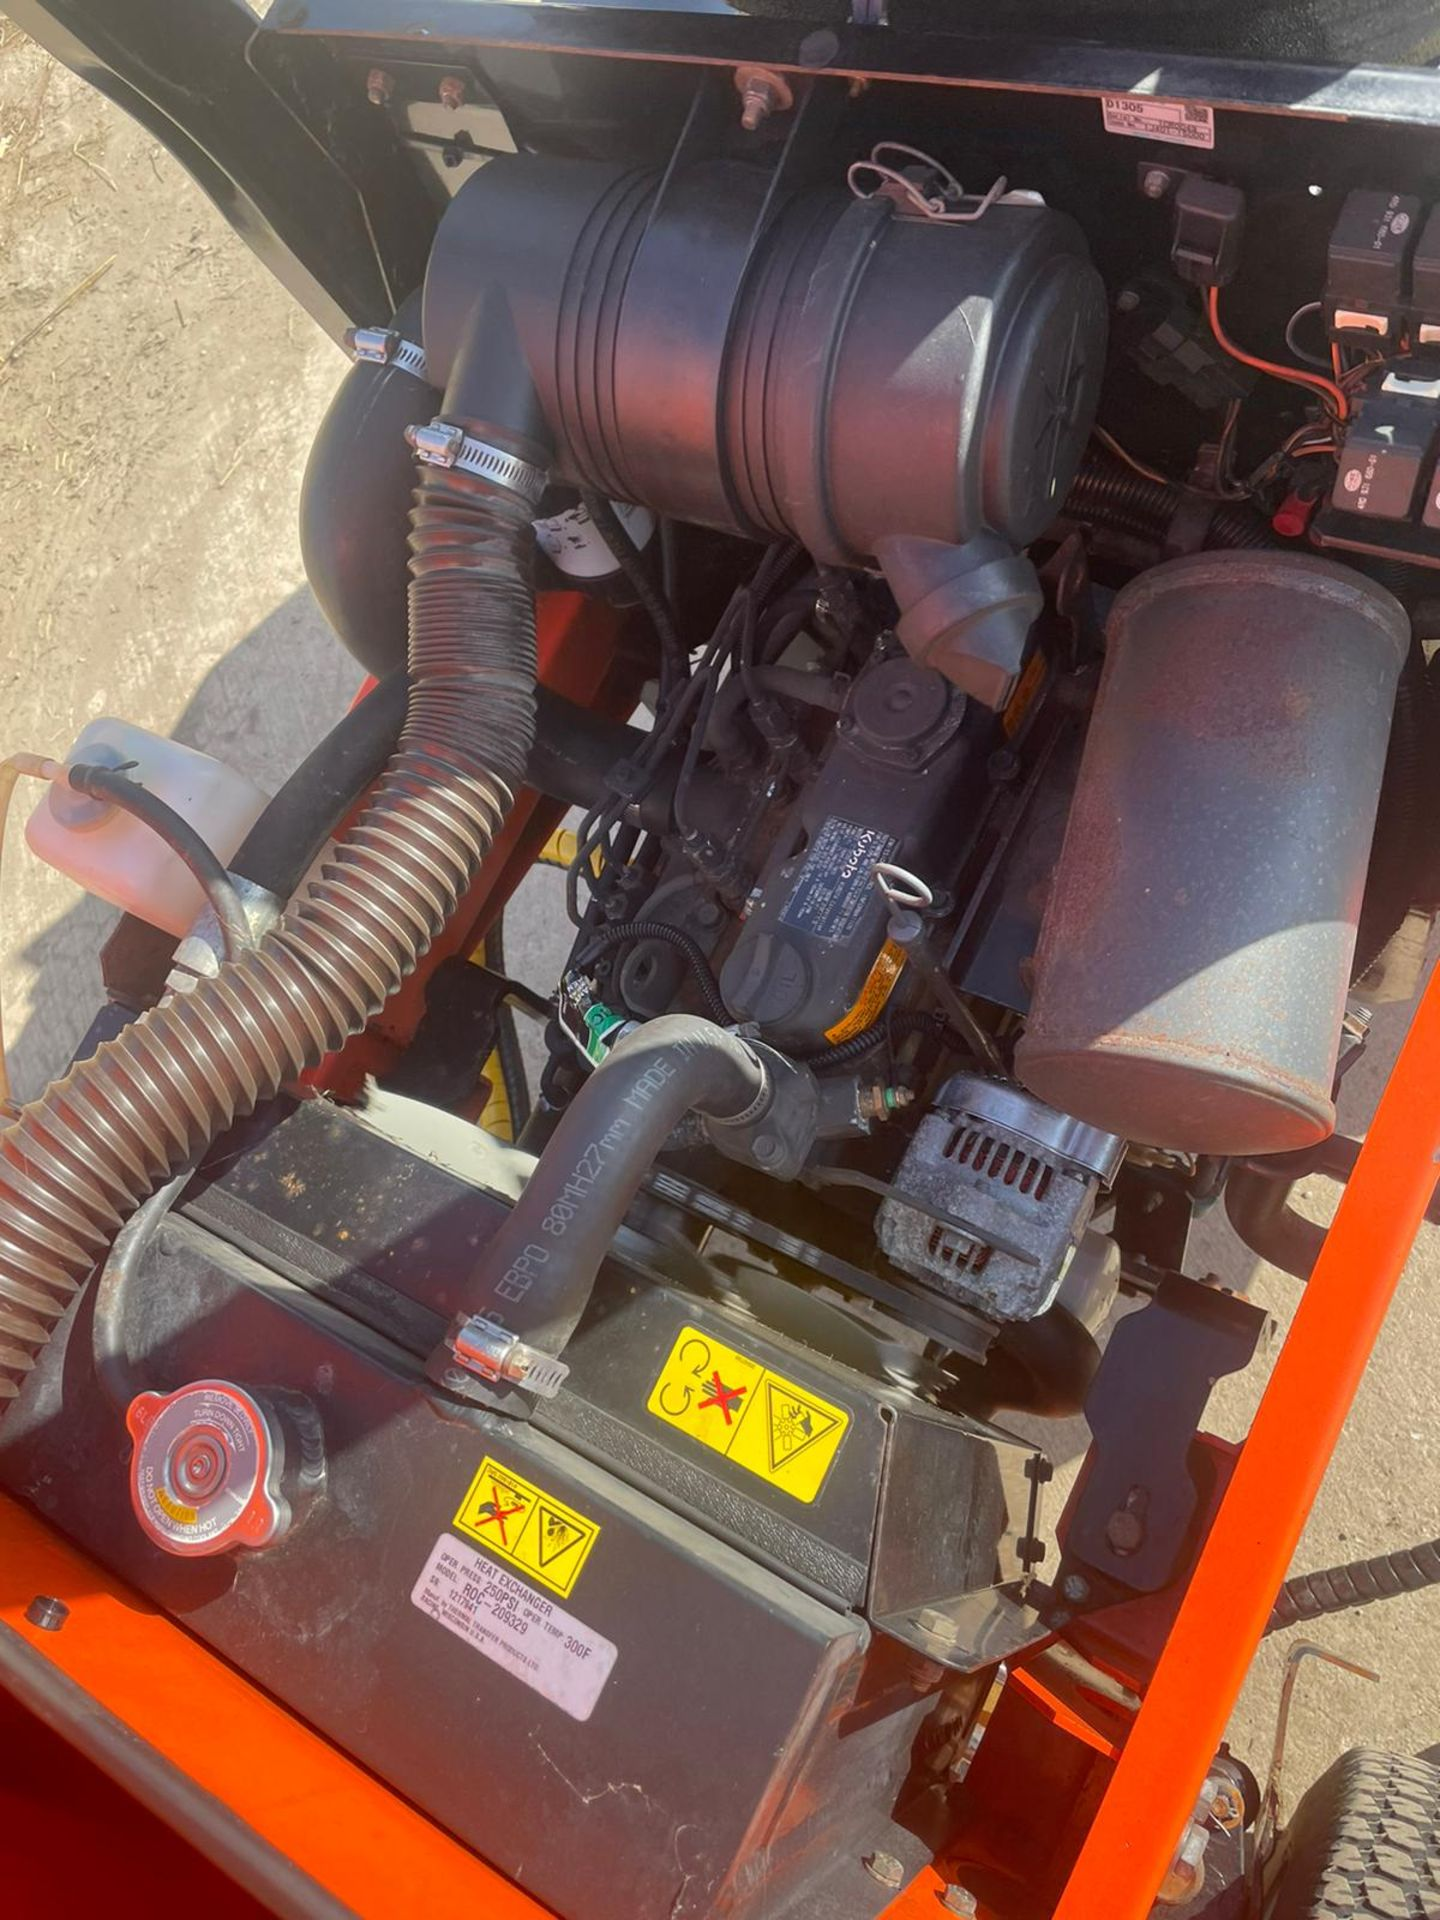 2013 JACOBSON 628D RIDE ON LAWN MOWER OUT FRONT, VERY GOOD CONDITION, 4 WHEEL DRIVE *NO VAT* - Image 7 of 7